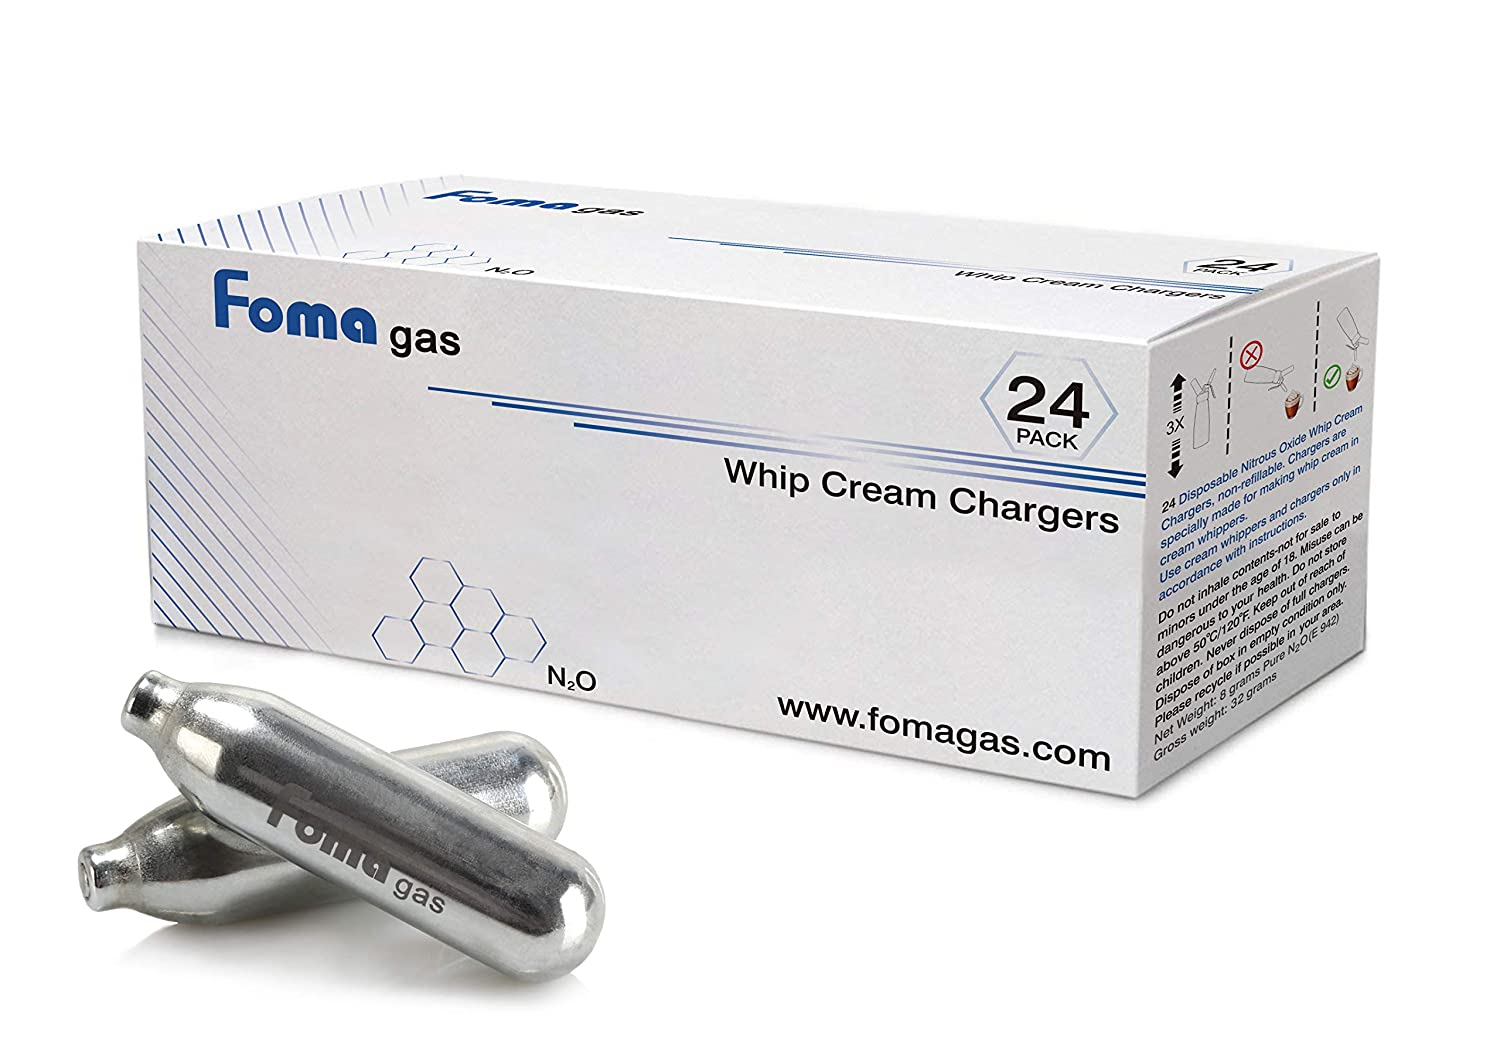 Foma Gas Pure Food Grade N2O Whip Cream Chargers 24 Packs